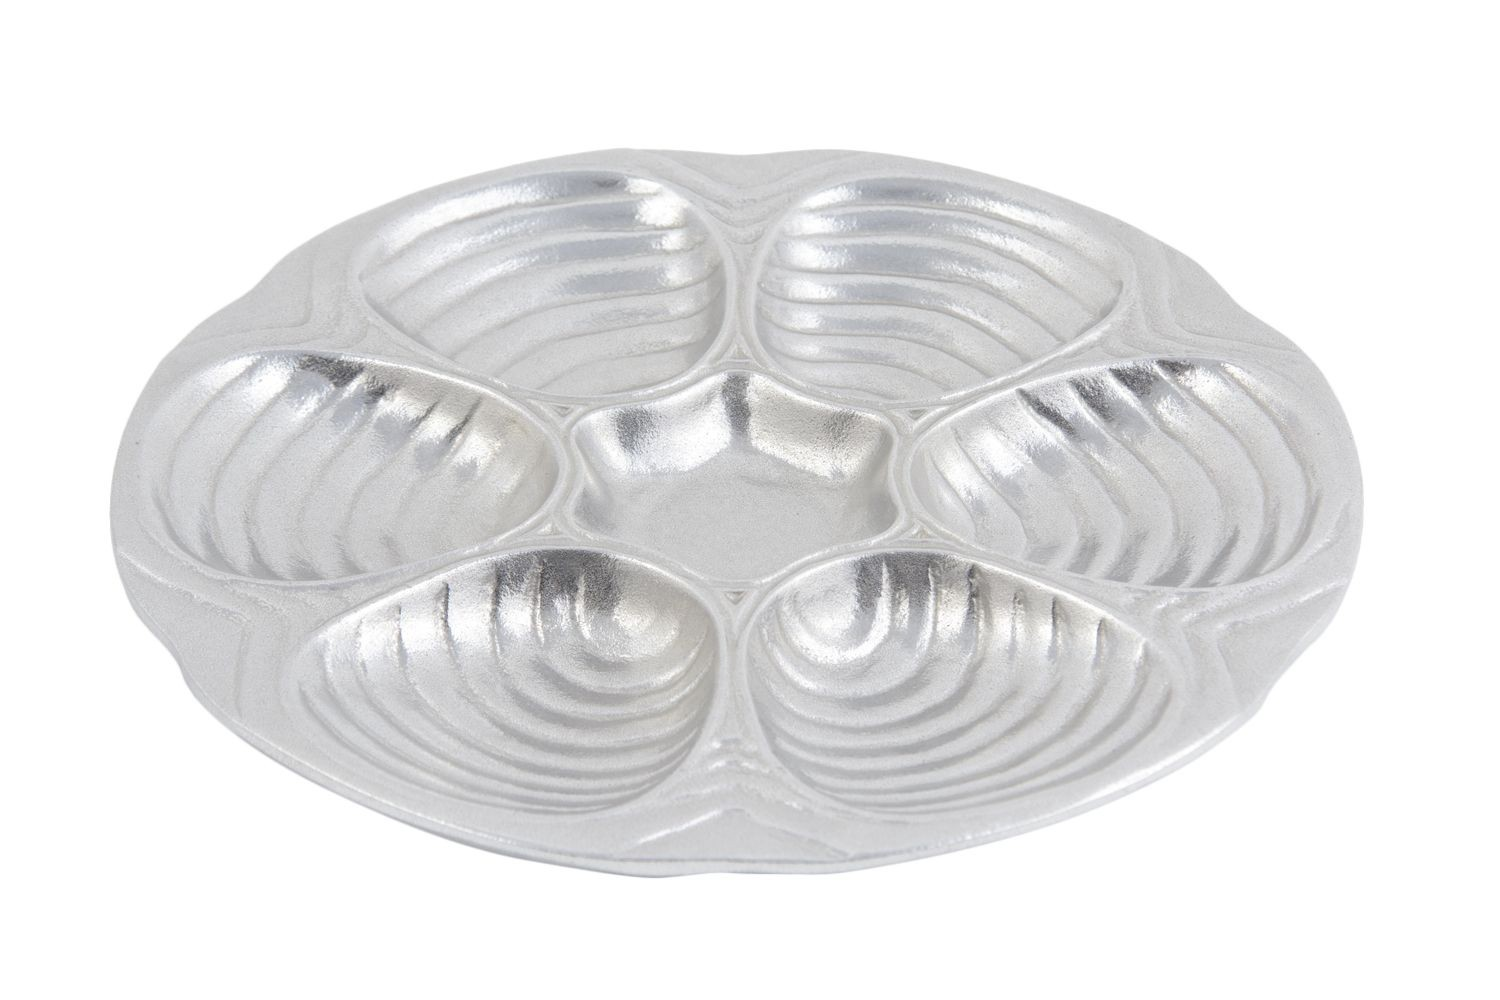 "Bon Chef 5017P 6-Hole Oyster and Clam Plate, Pewter Glo 10 1/2"" Dia., Set of 3"